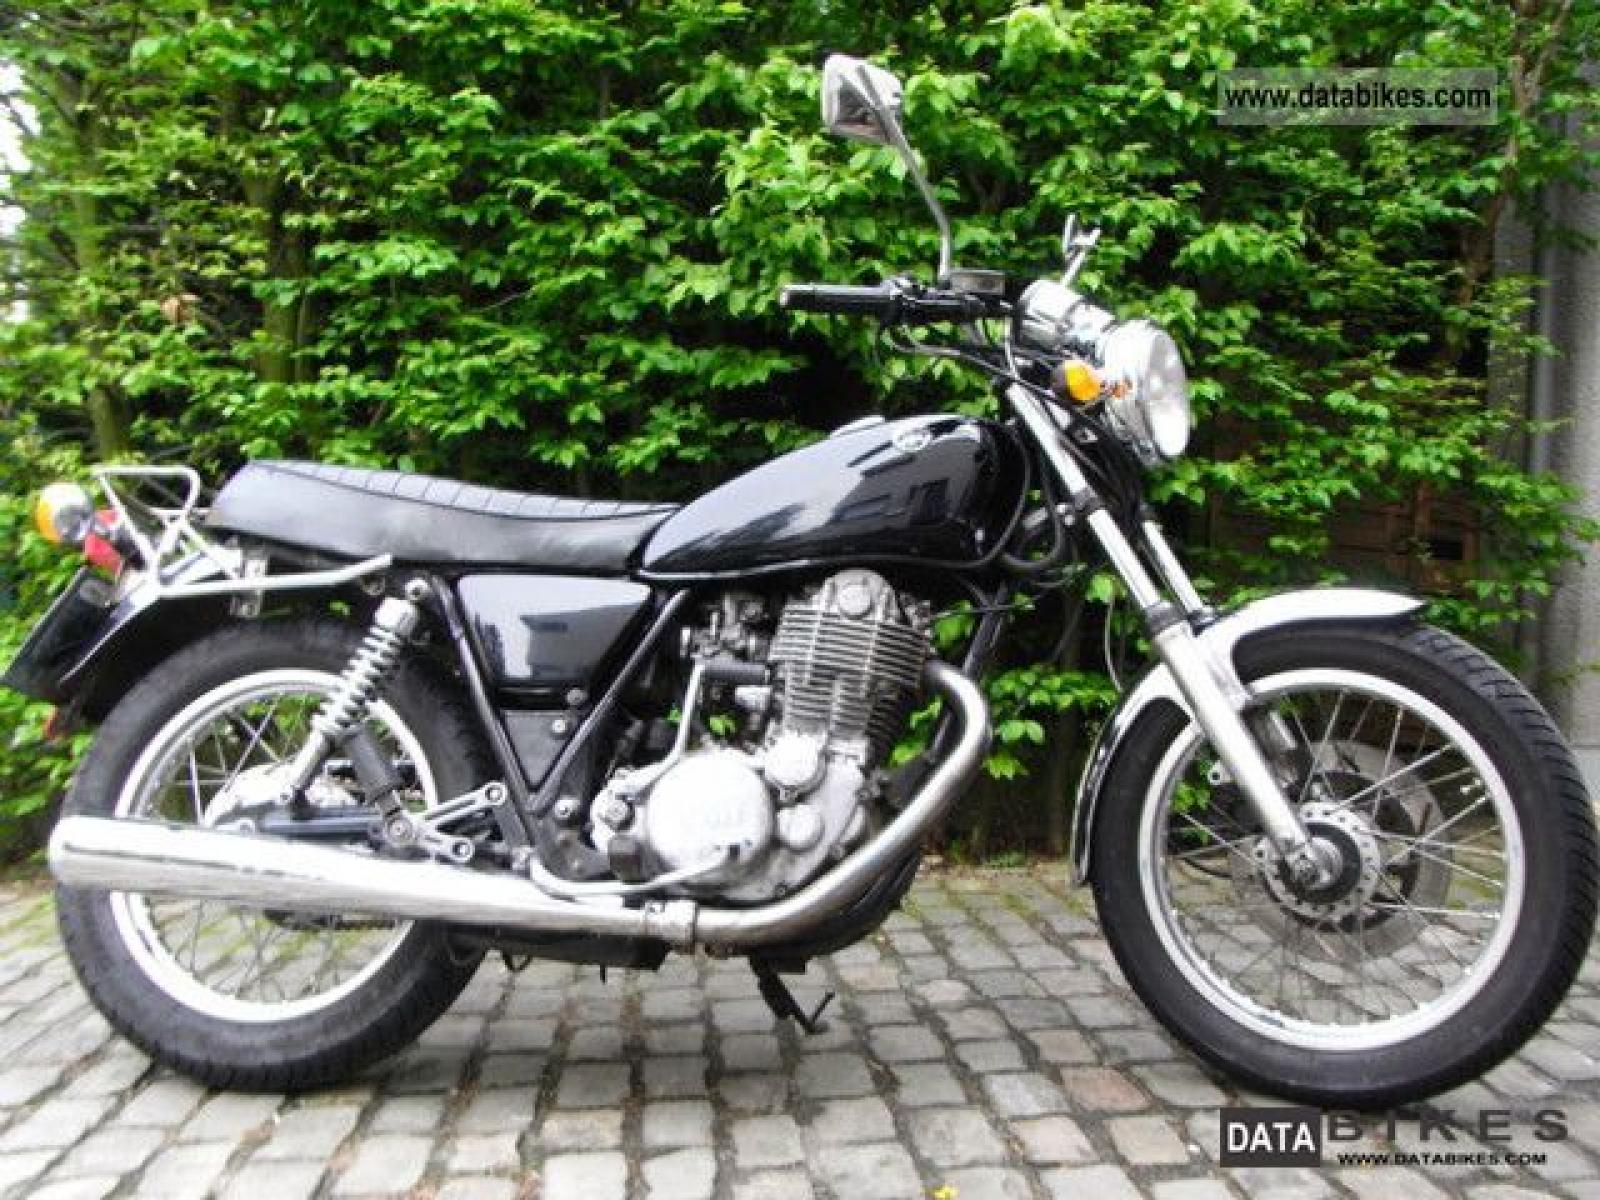 1993 yamaha sr 125 pics specs and information. Black Bedroom Furniture Sets. Home Design Ideas